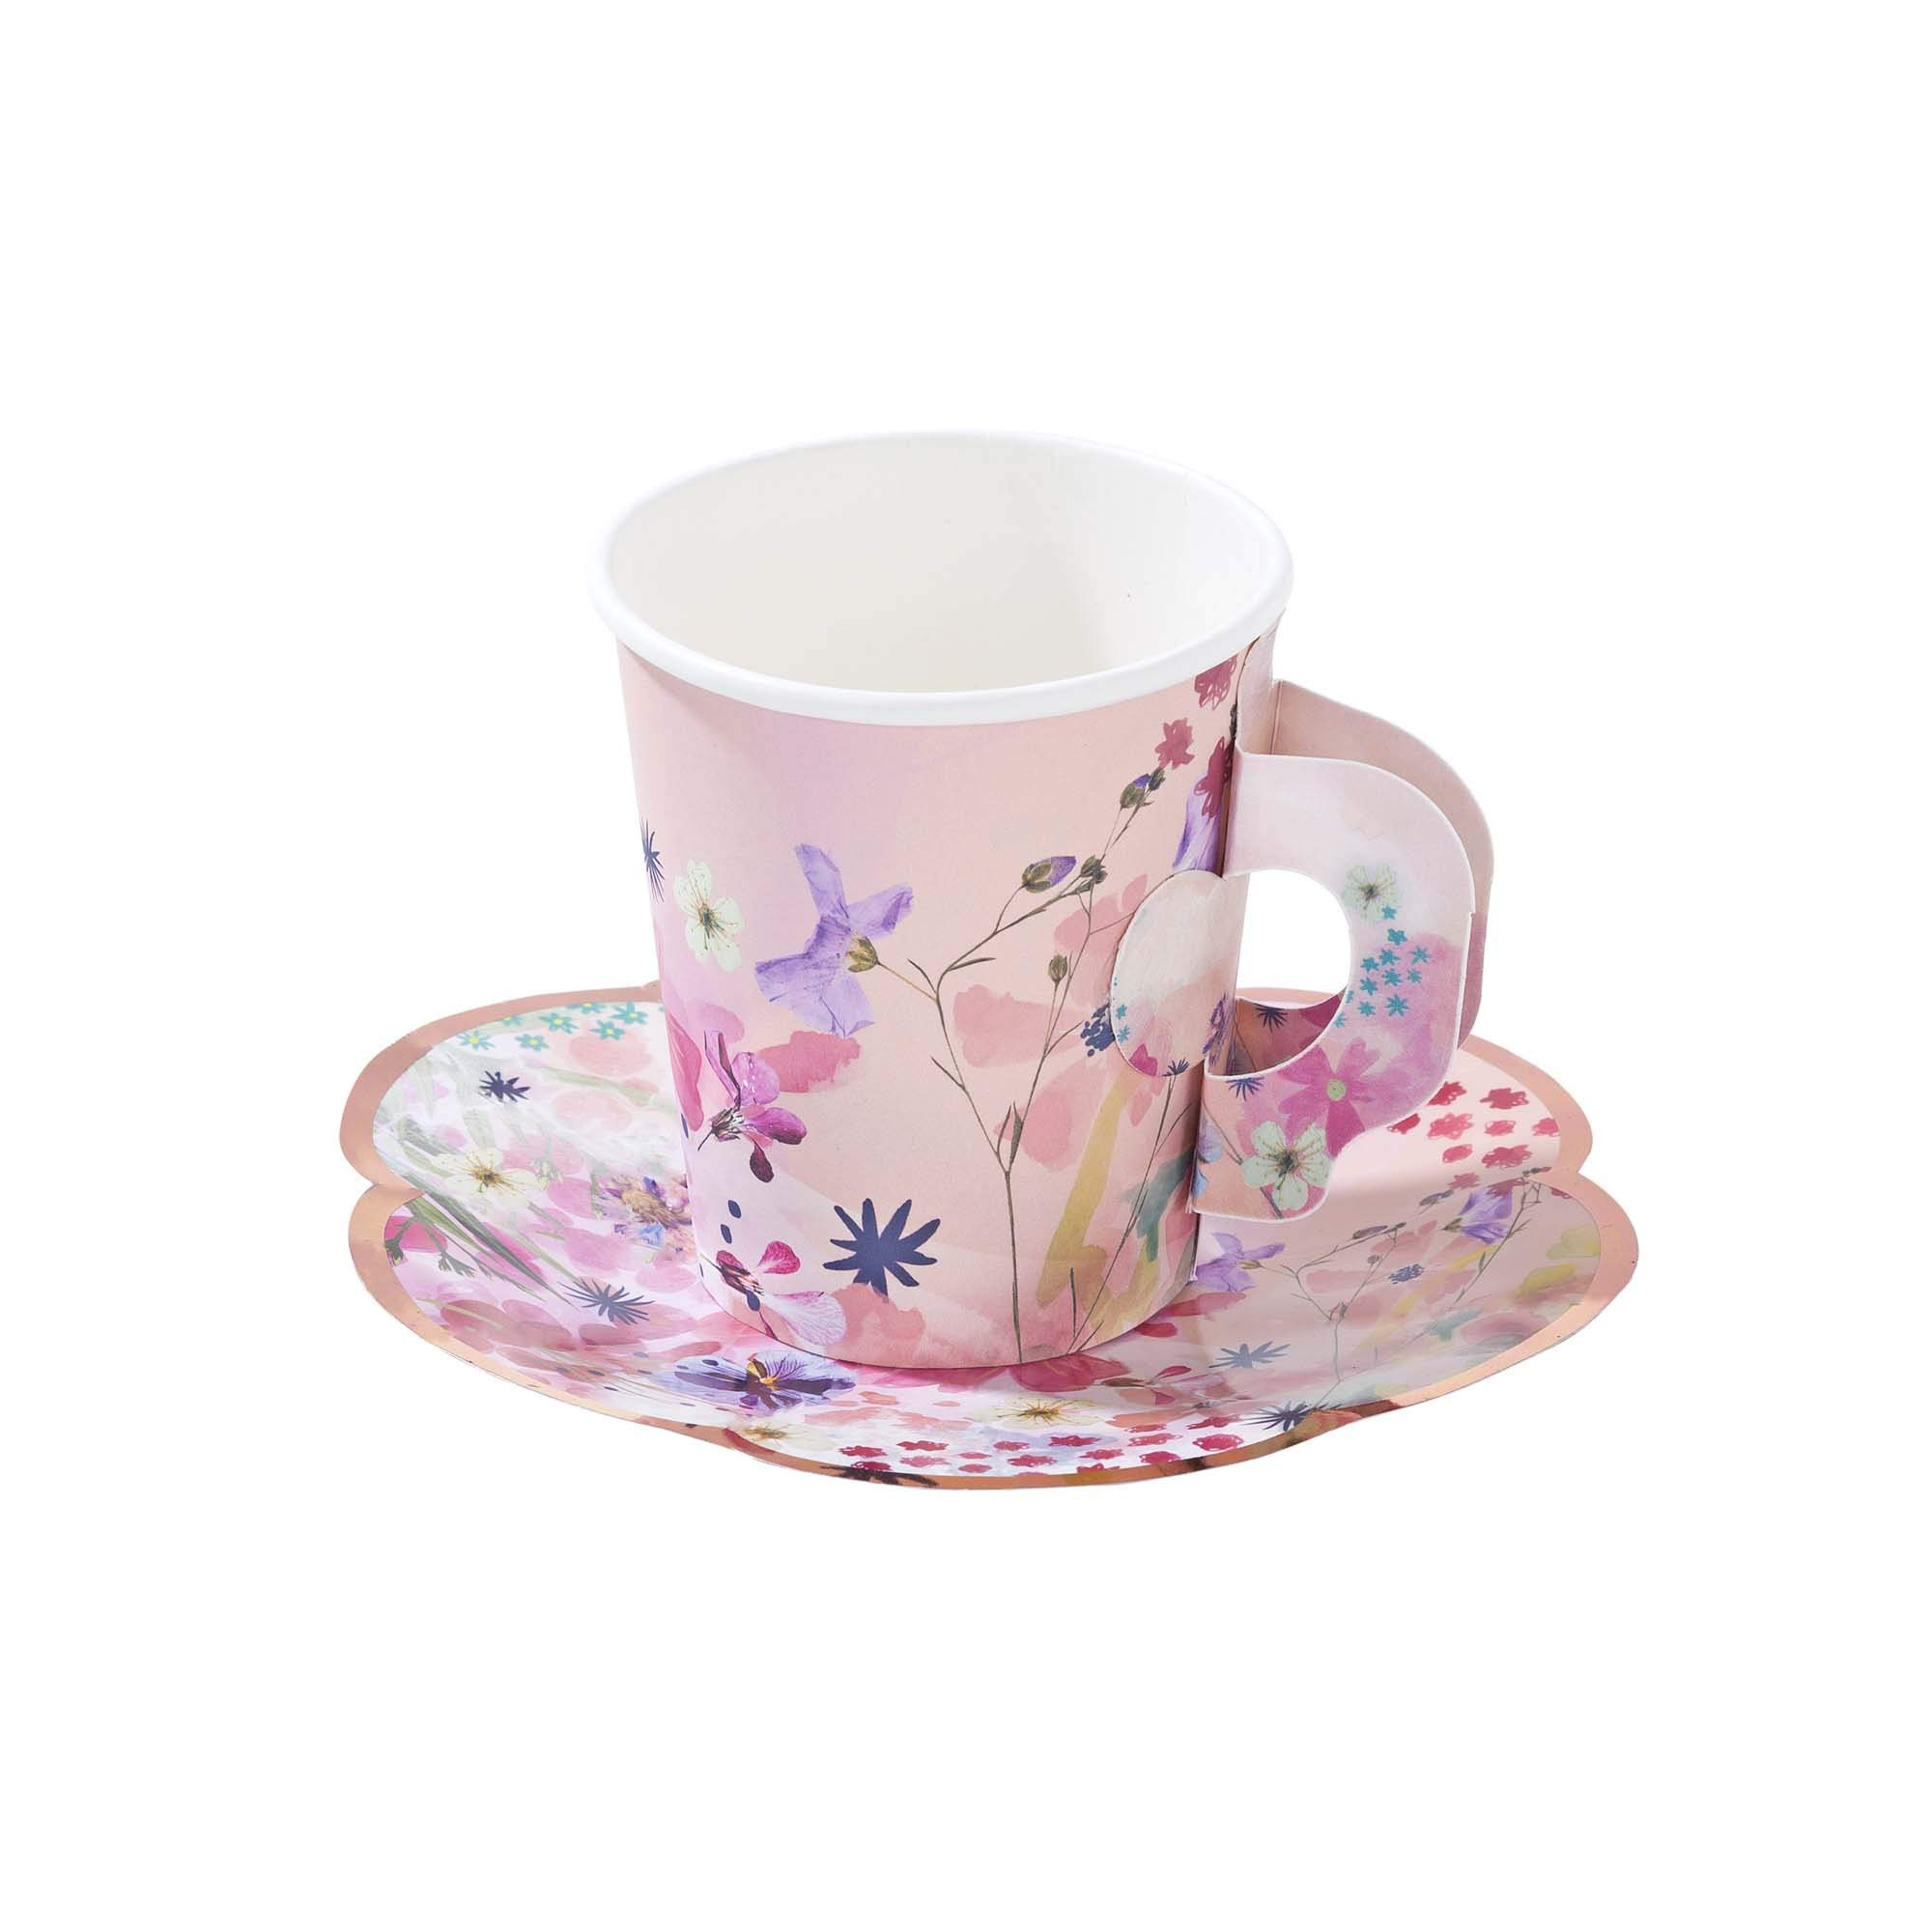 Bridal Shower Baby Shower Girls Birthday Tea Party Cups Pink Floral Paper Cups and Saucers 8 oz Pk 24 by Talking Tables